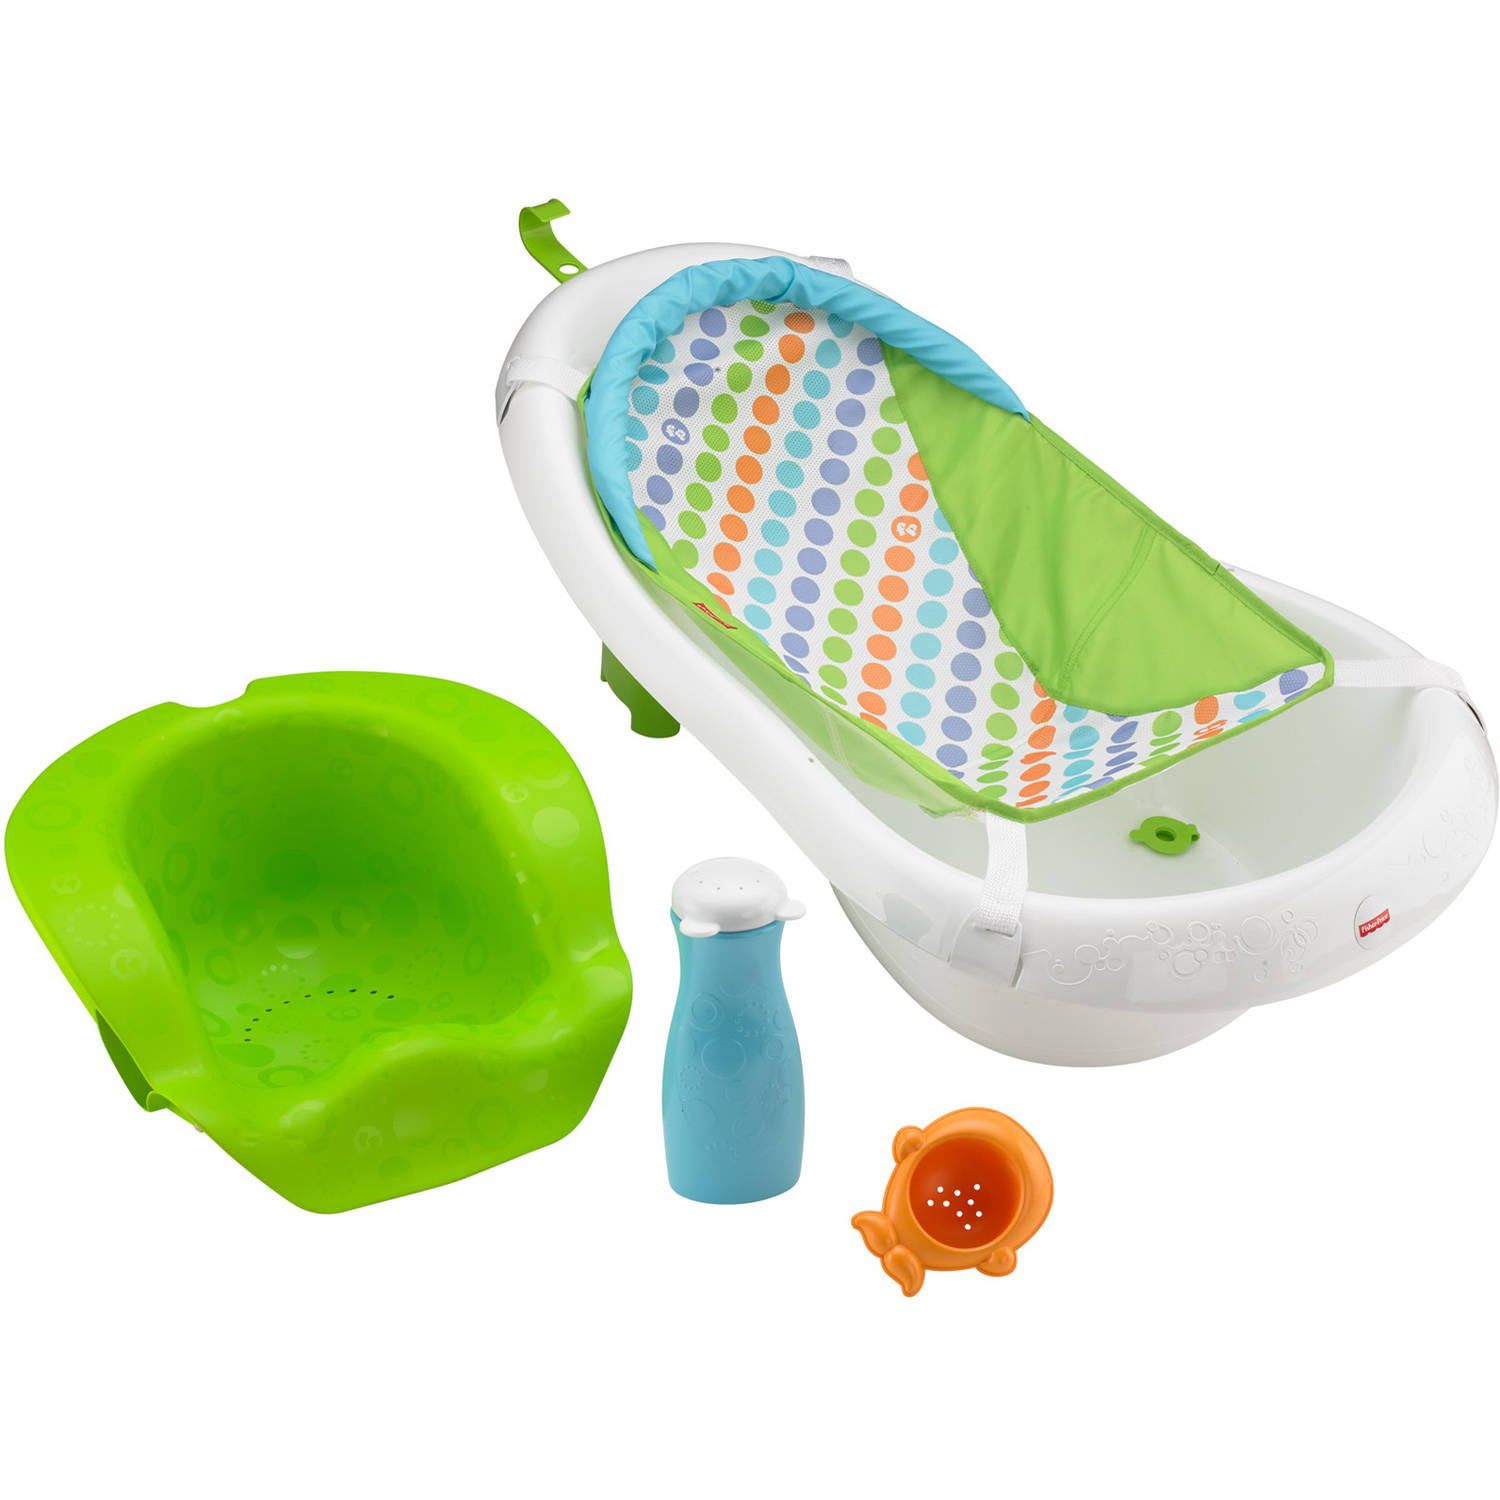 Angelcare Bath Support, Aqua - Walmart.com